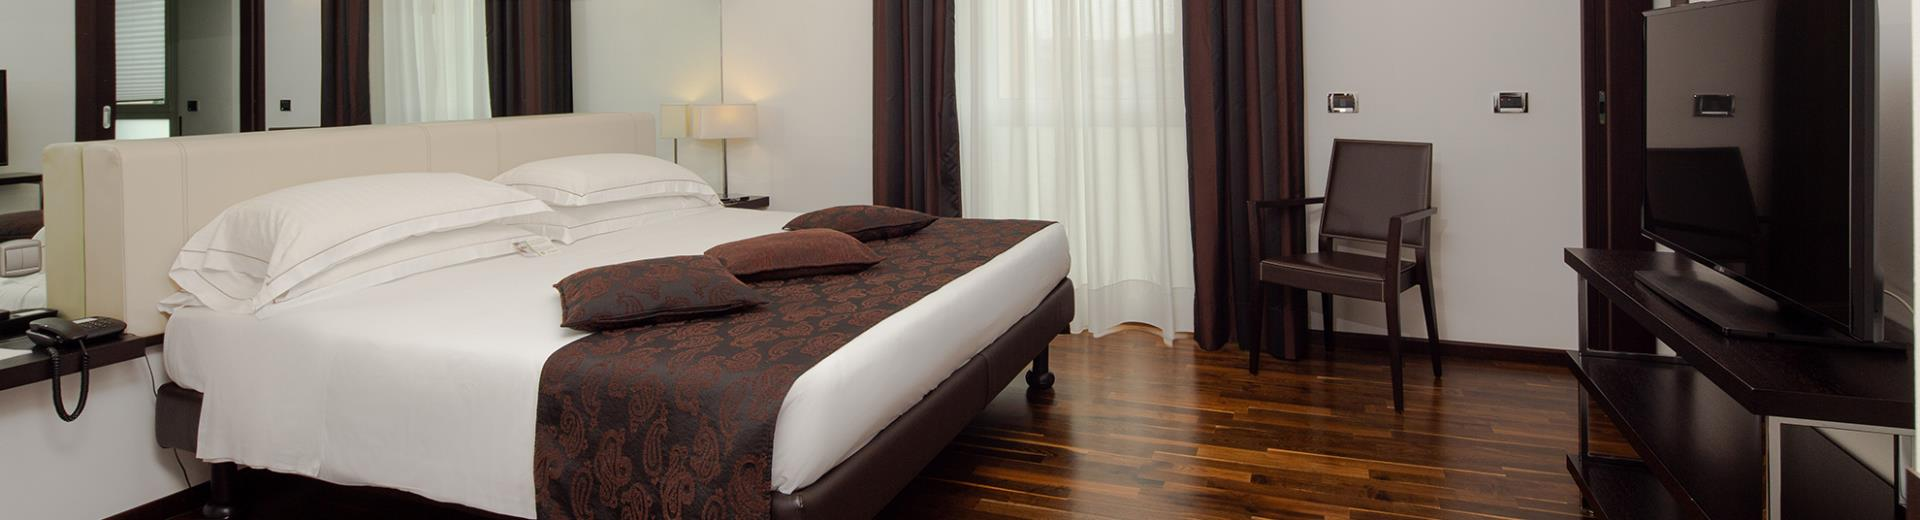 Discover all the comfort of the Best Western Hotel Biri Suites, 4 stars in Padua!